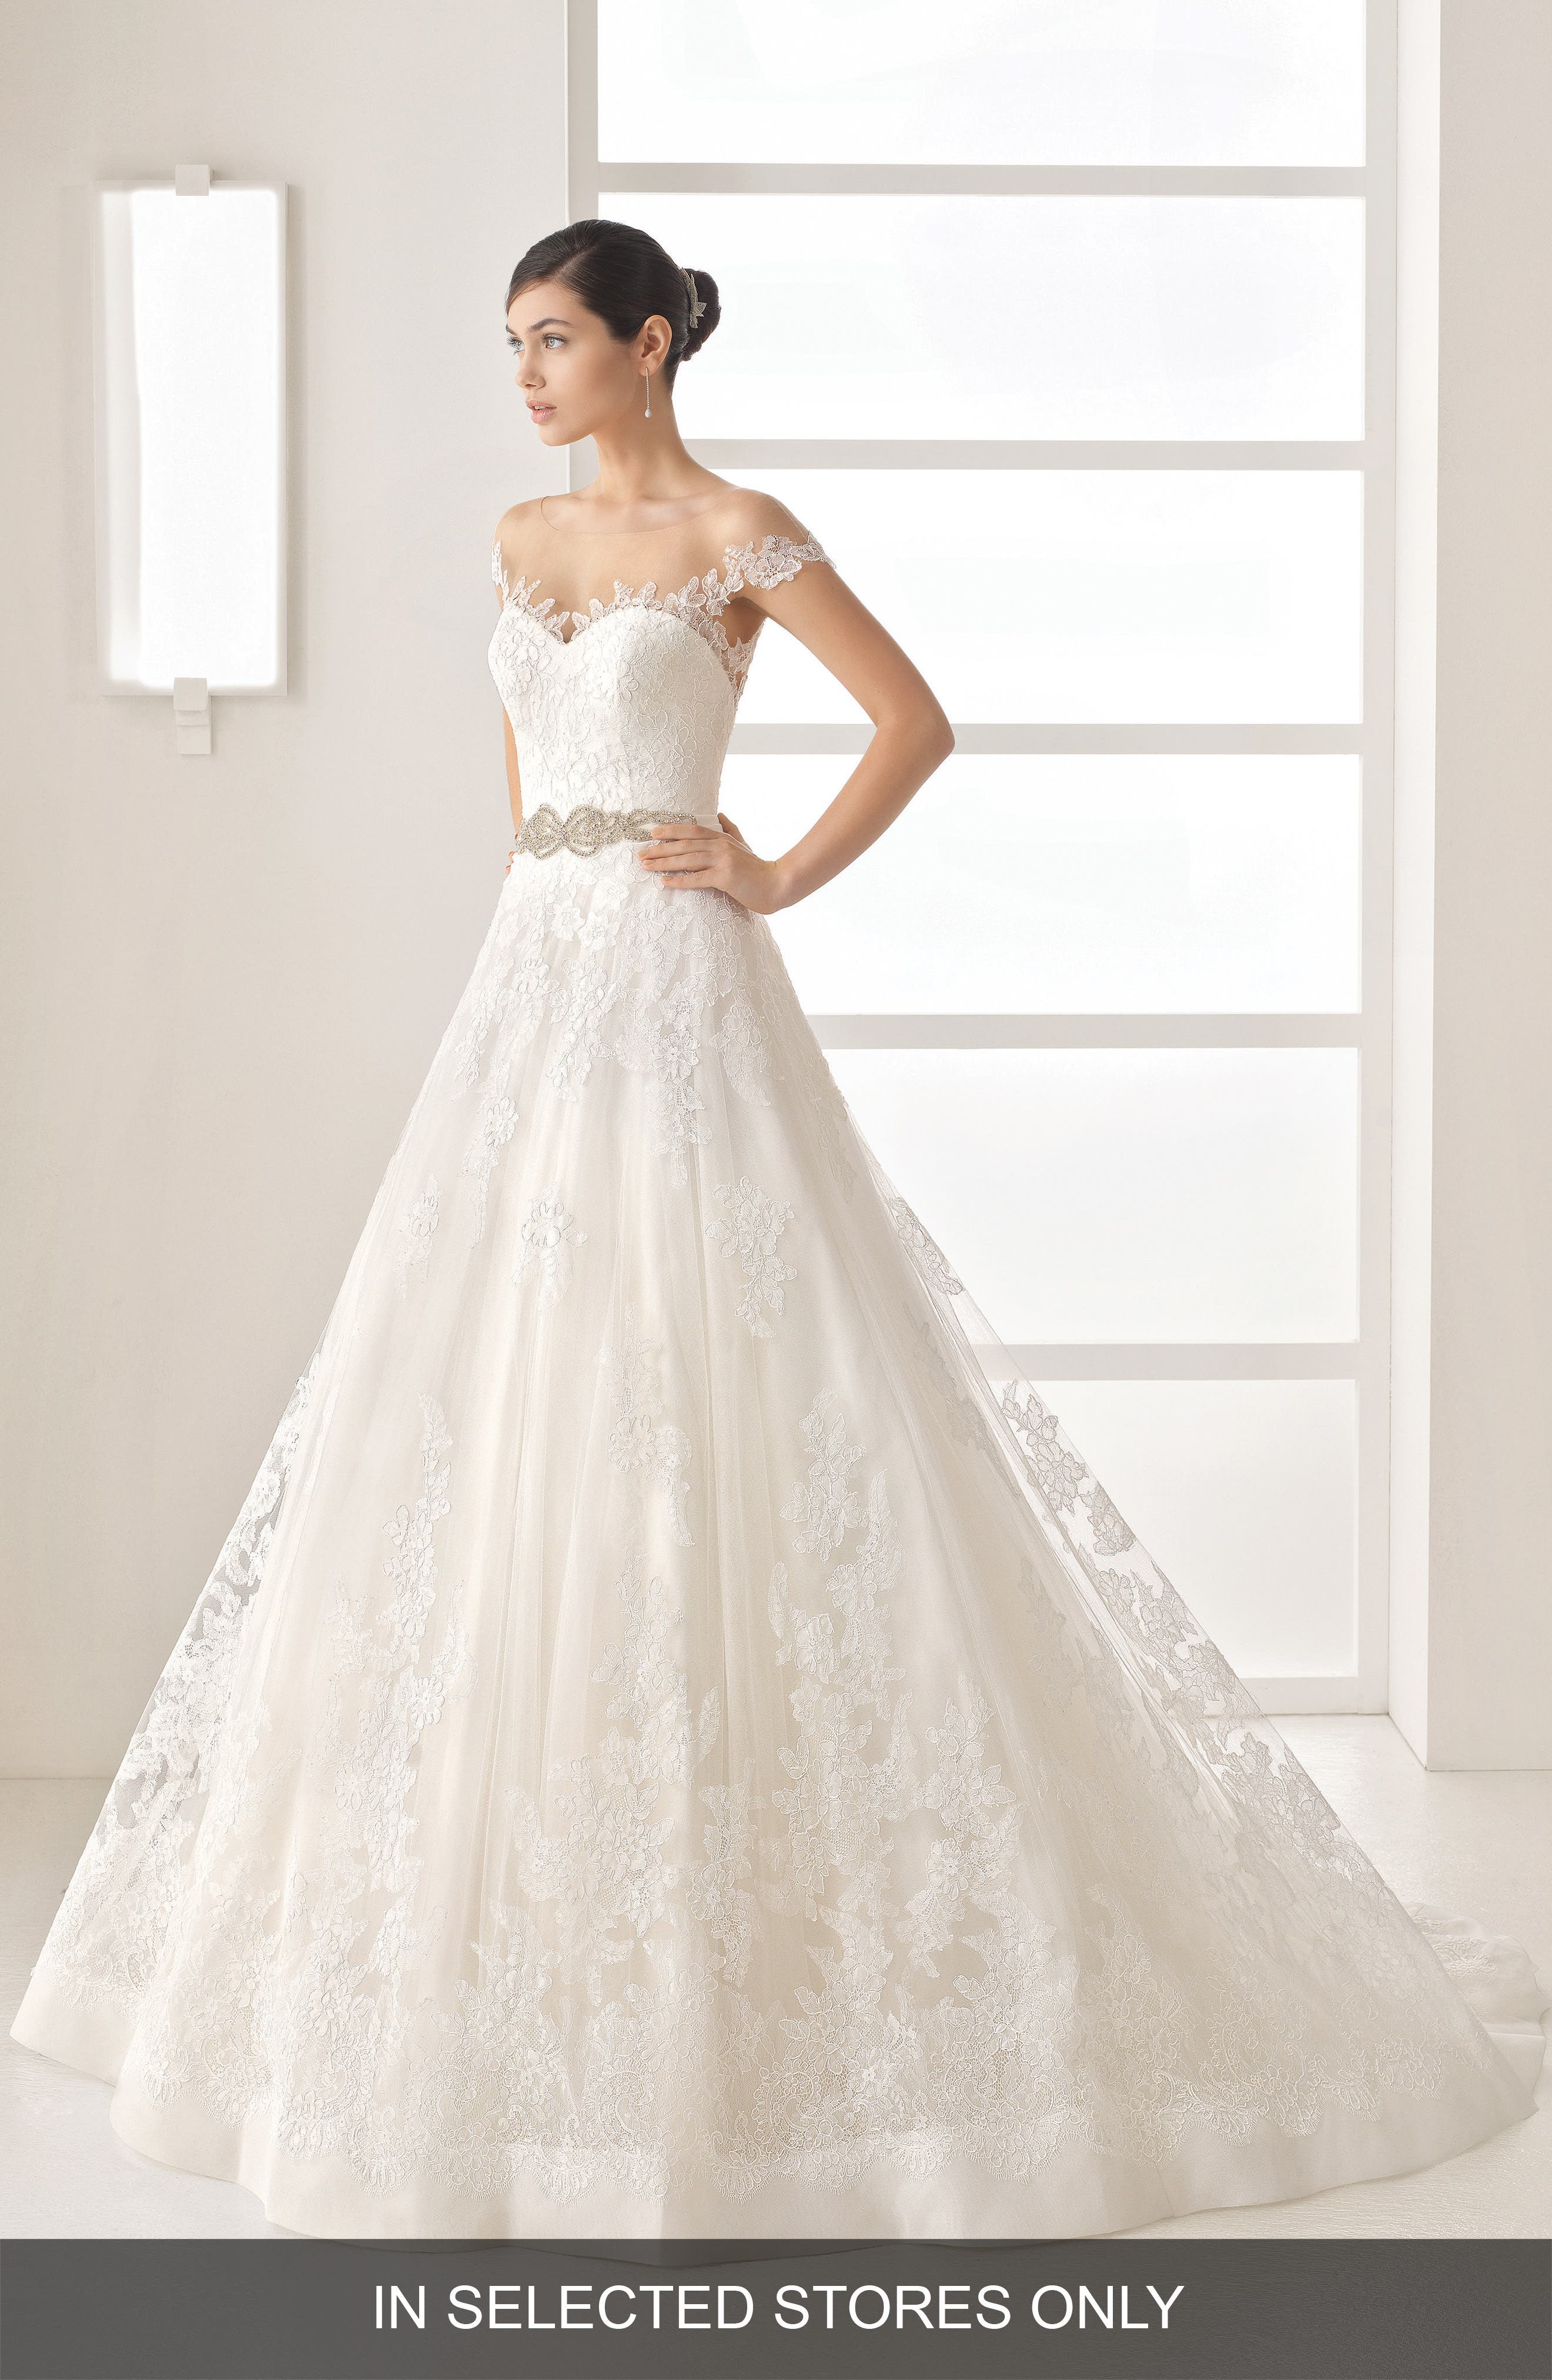 Alternate Image 1 Selected - Rosa Clara Olesa Illusion Off the Shoulder Lace & Tulle Gown